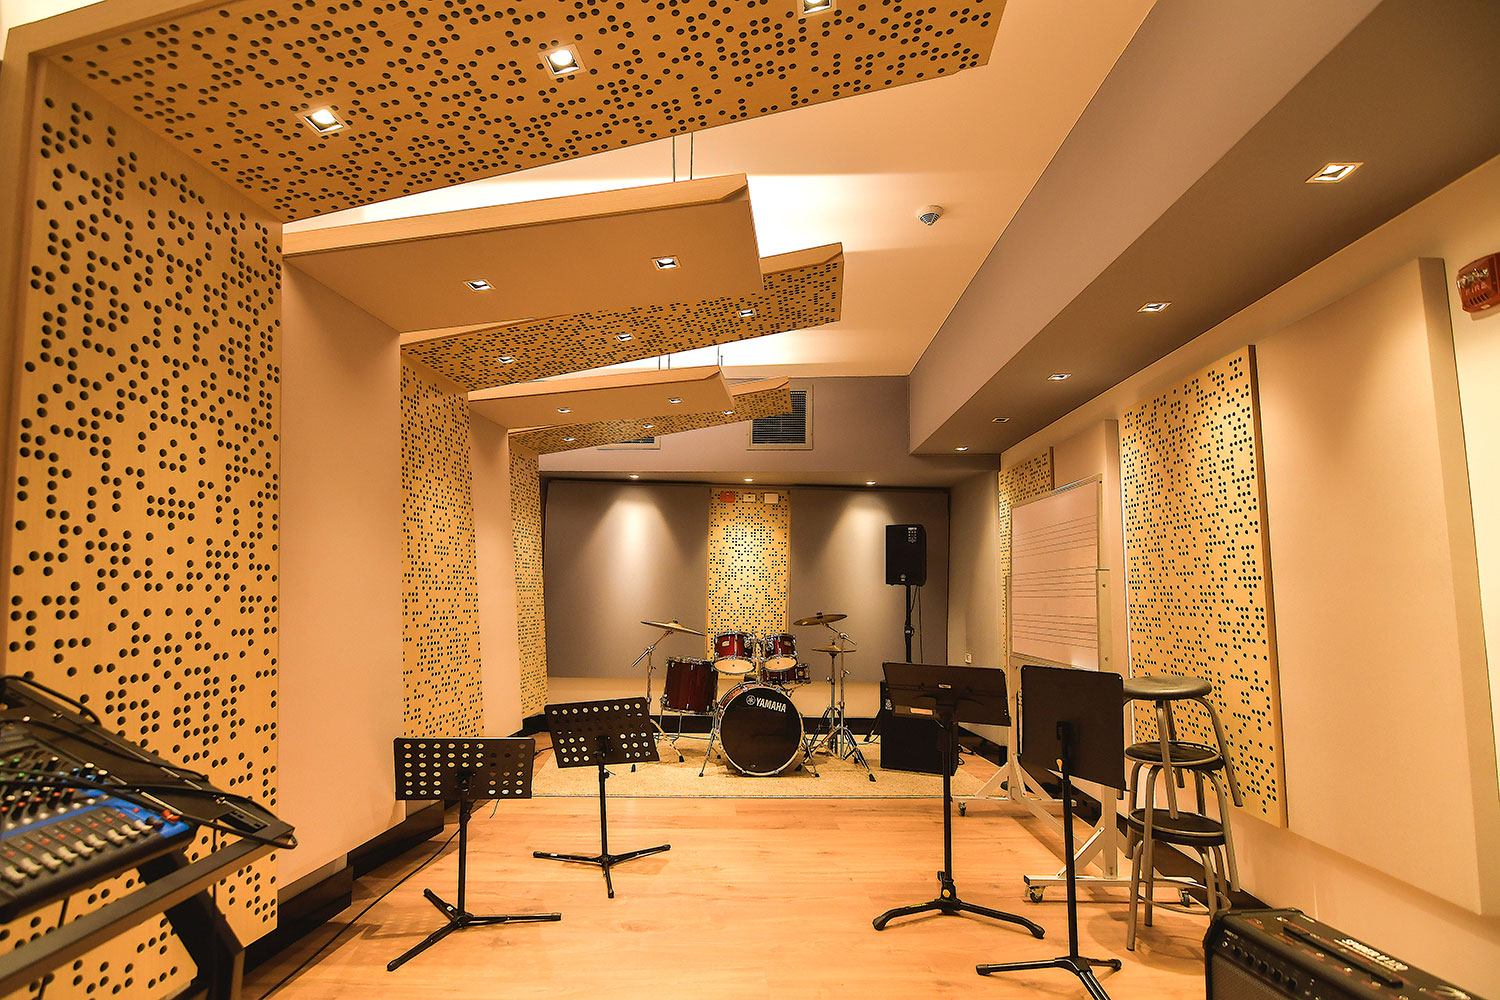 Universidad ICESI new world-class recording studio facility designed by WSDG. Ensemble room 2.